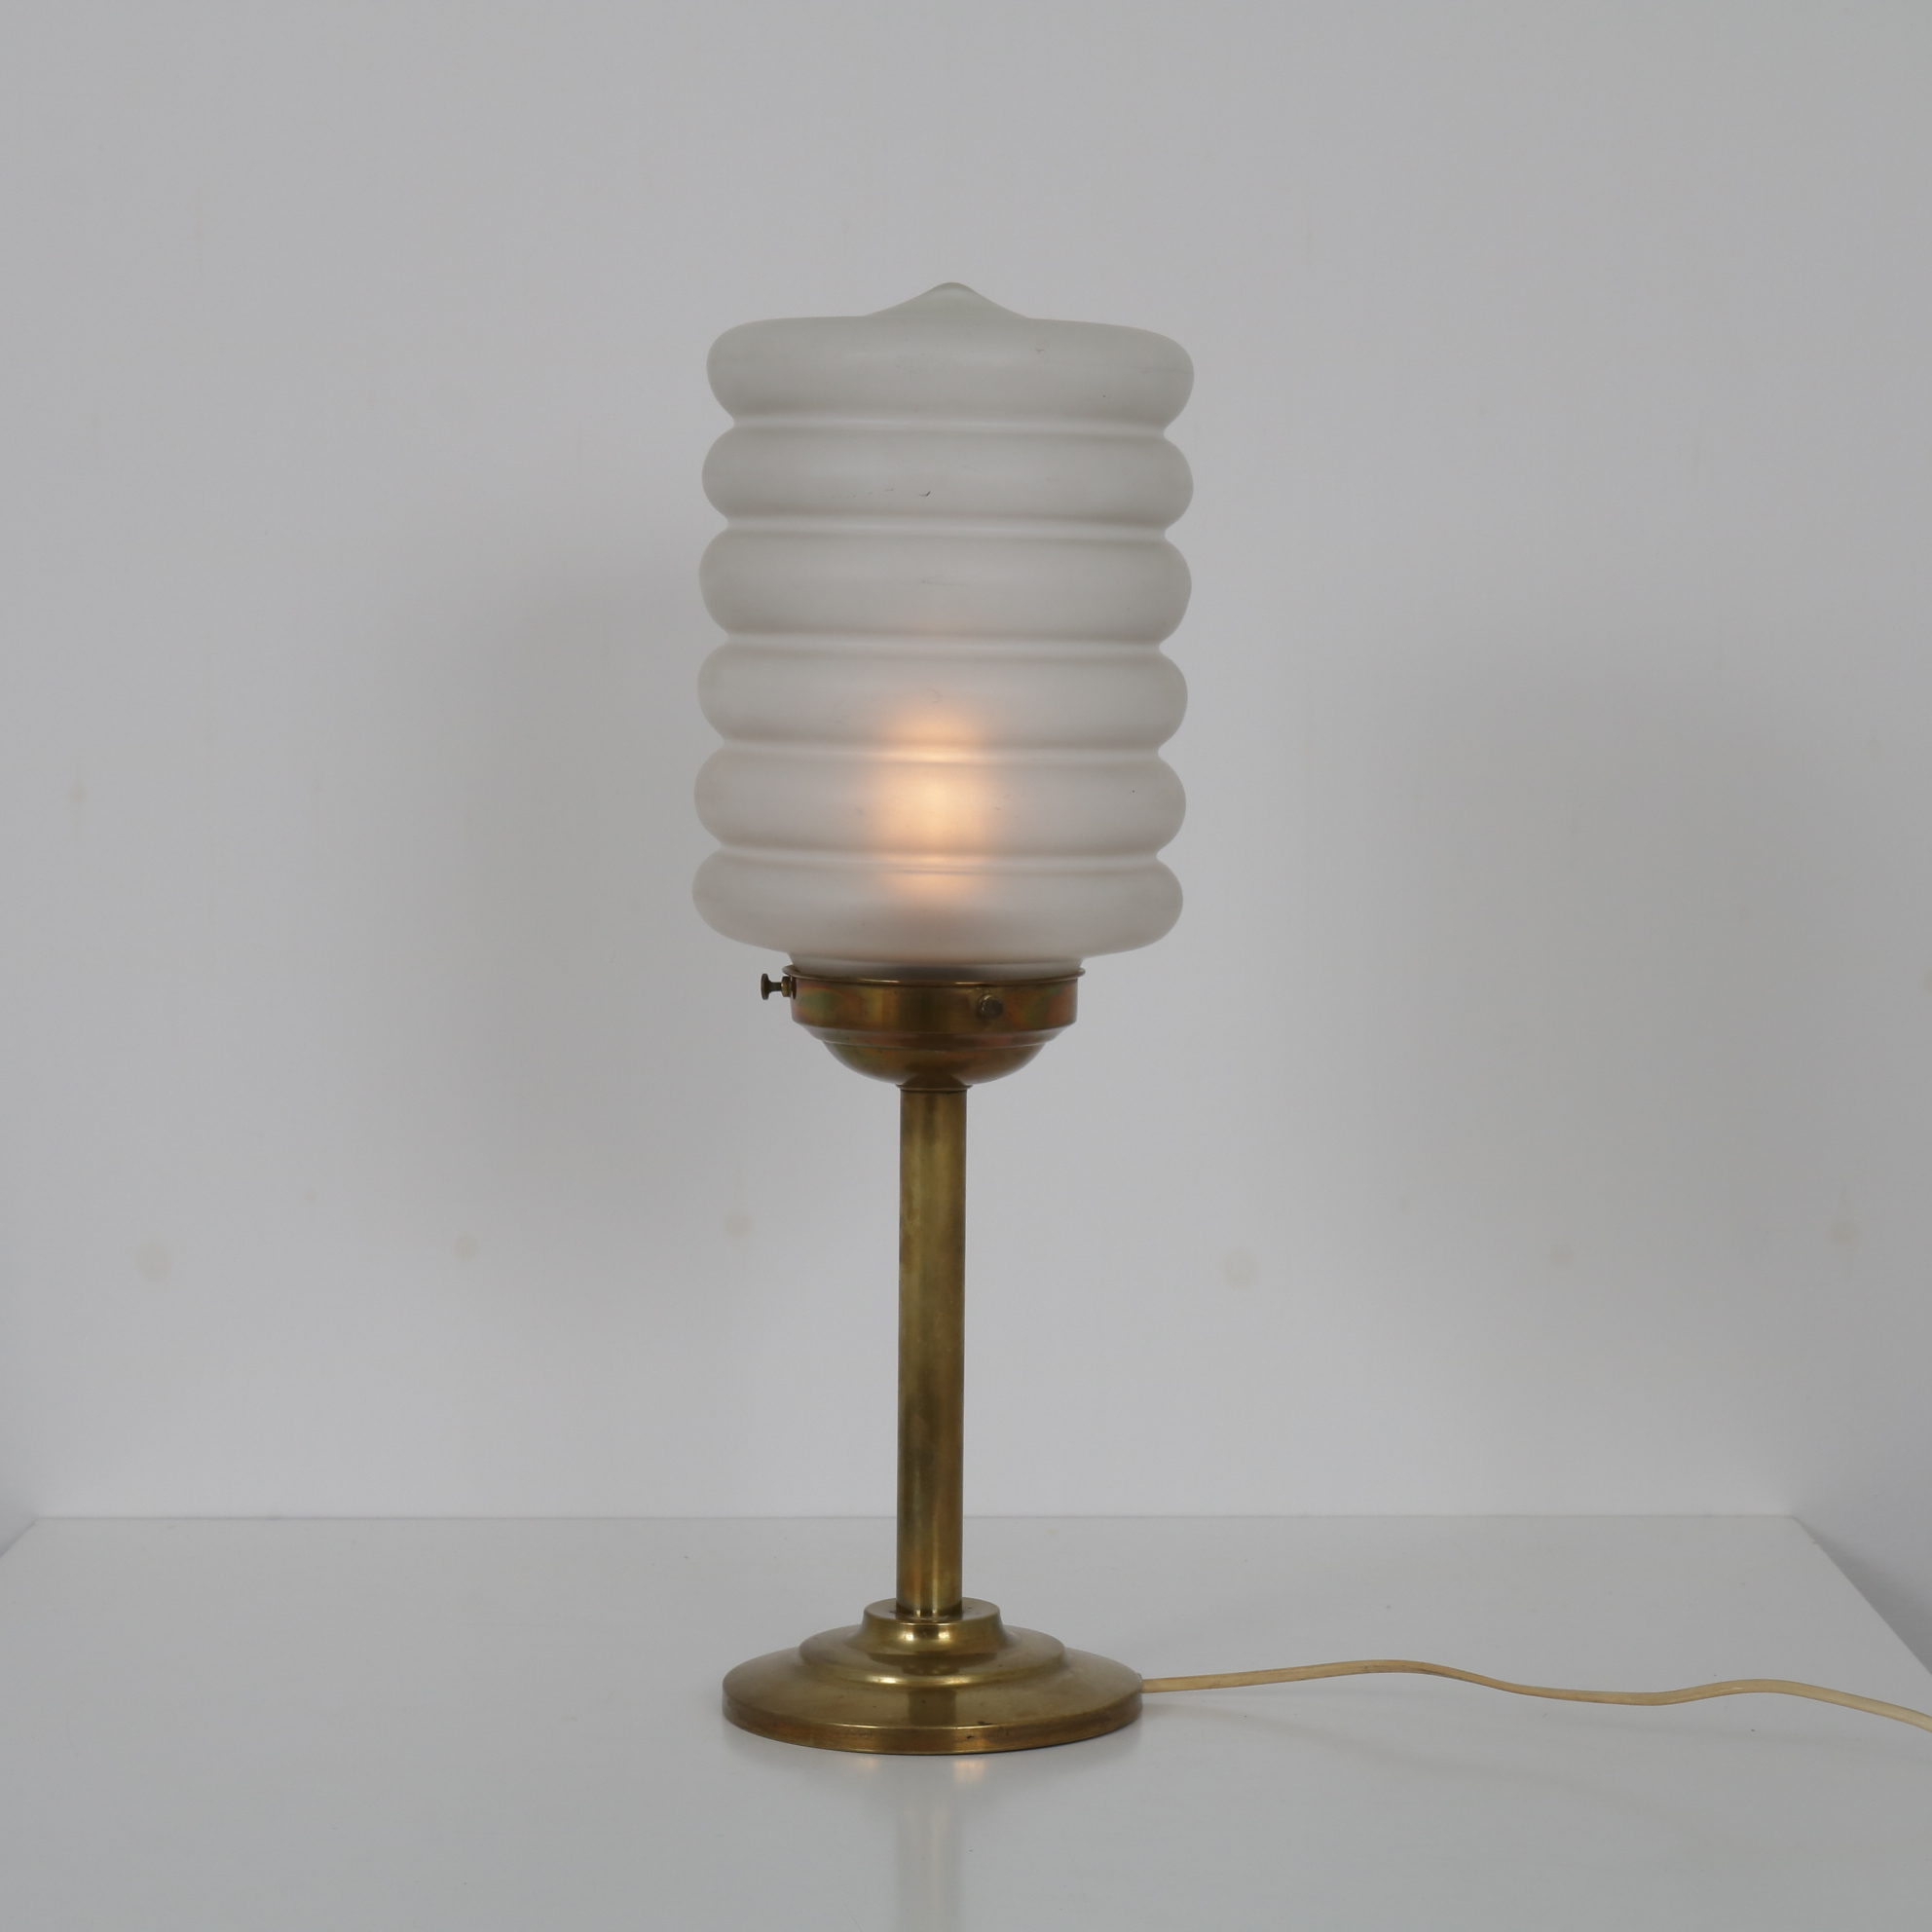 INC67 1950s Swedish table lamp on brass base with milk glass hood